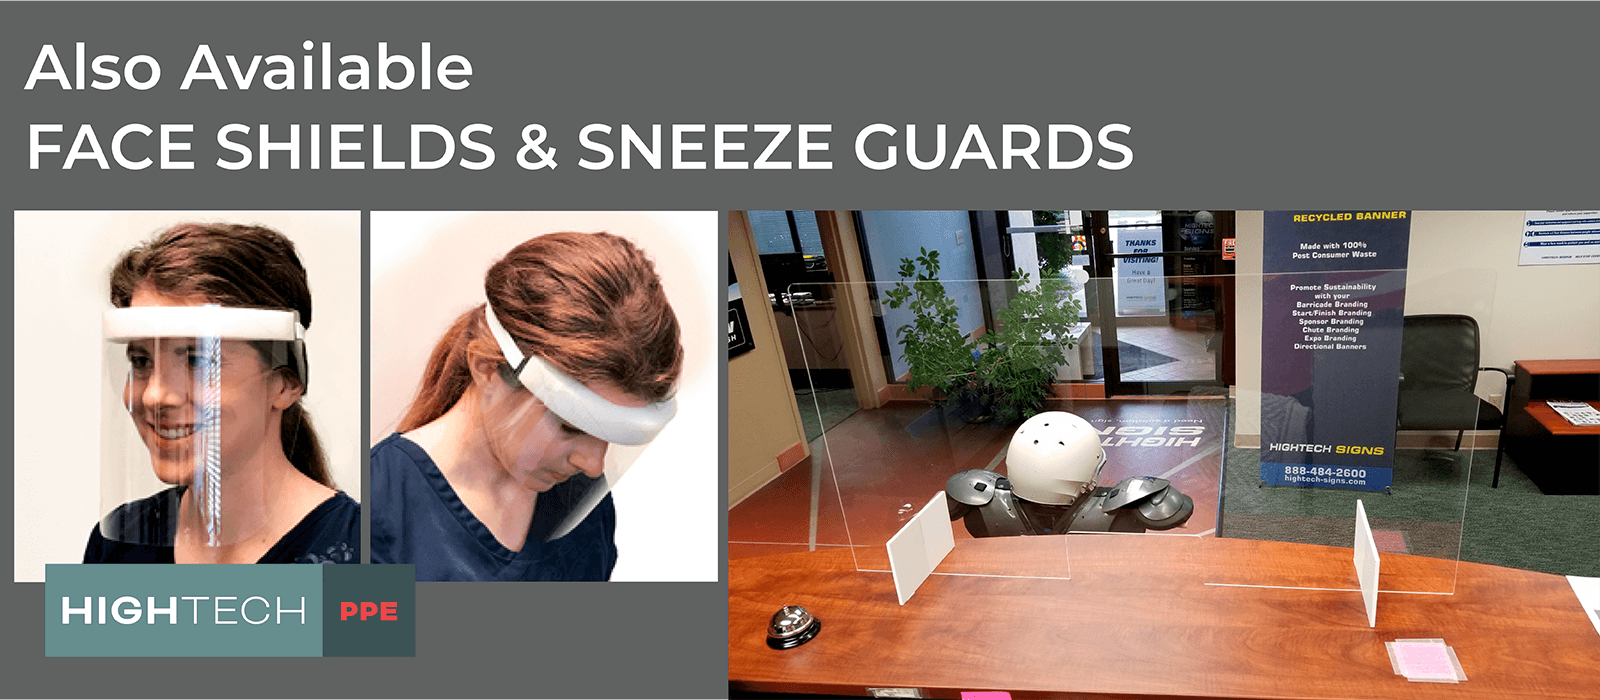 Hightech Face Shields Sneeze Guards